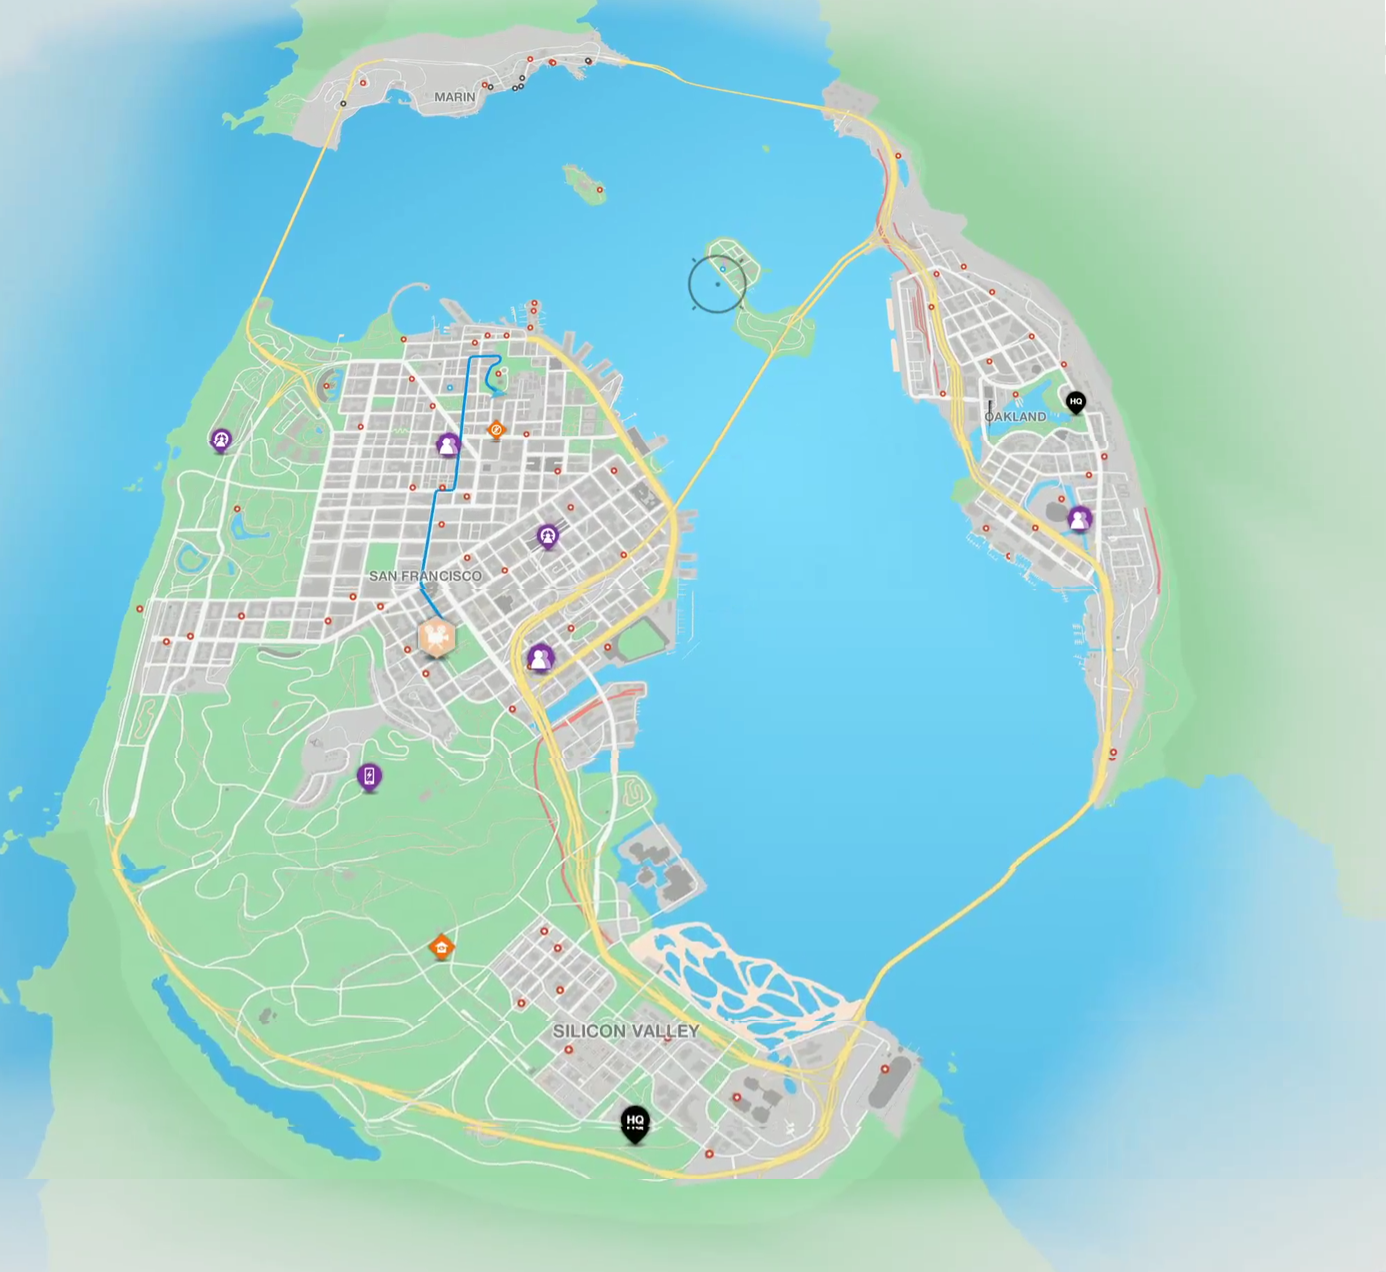 ubisoft forums Watch Dogs Logo through the map, so i screencapped a few times and merged a big one altogether the result is below, alongside a comparison to the real bay area